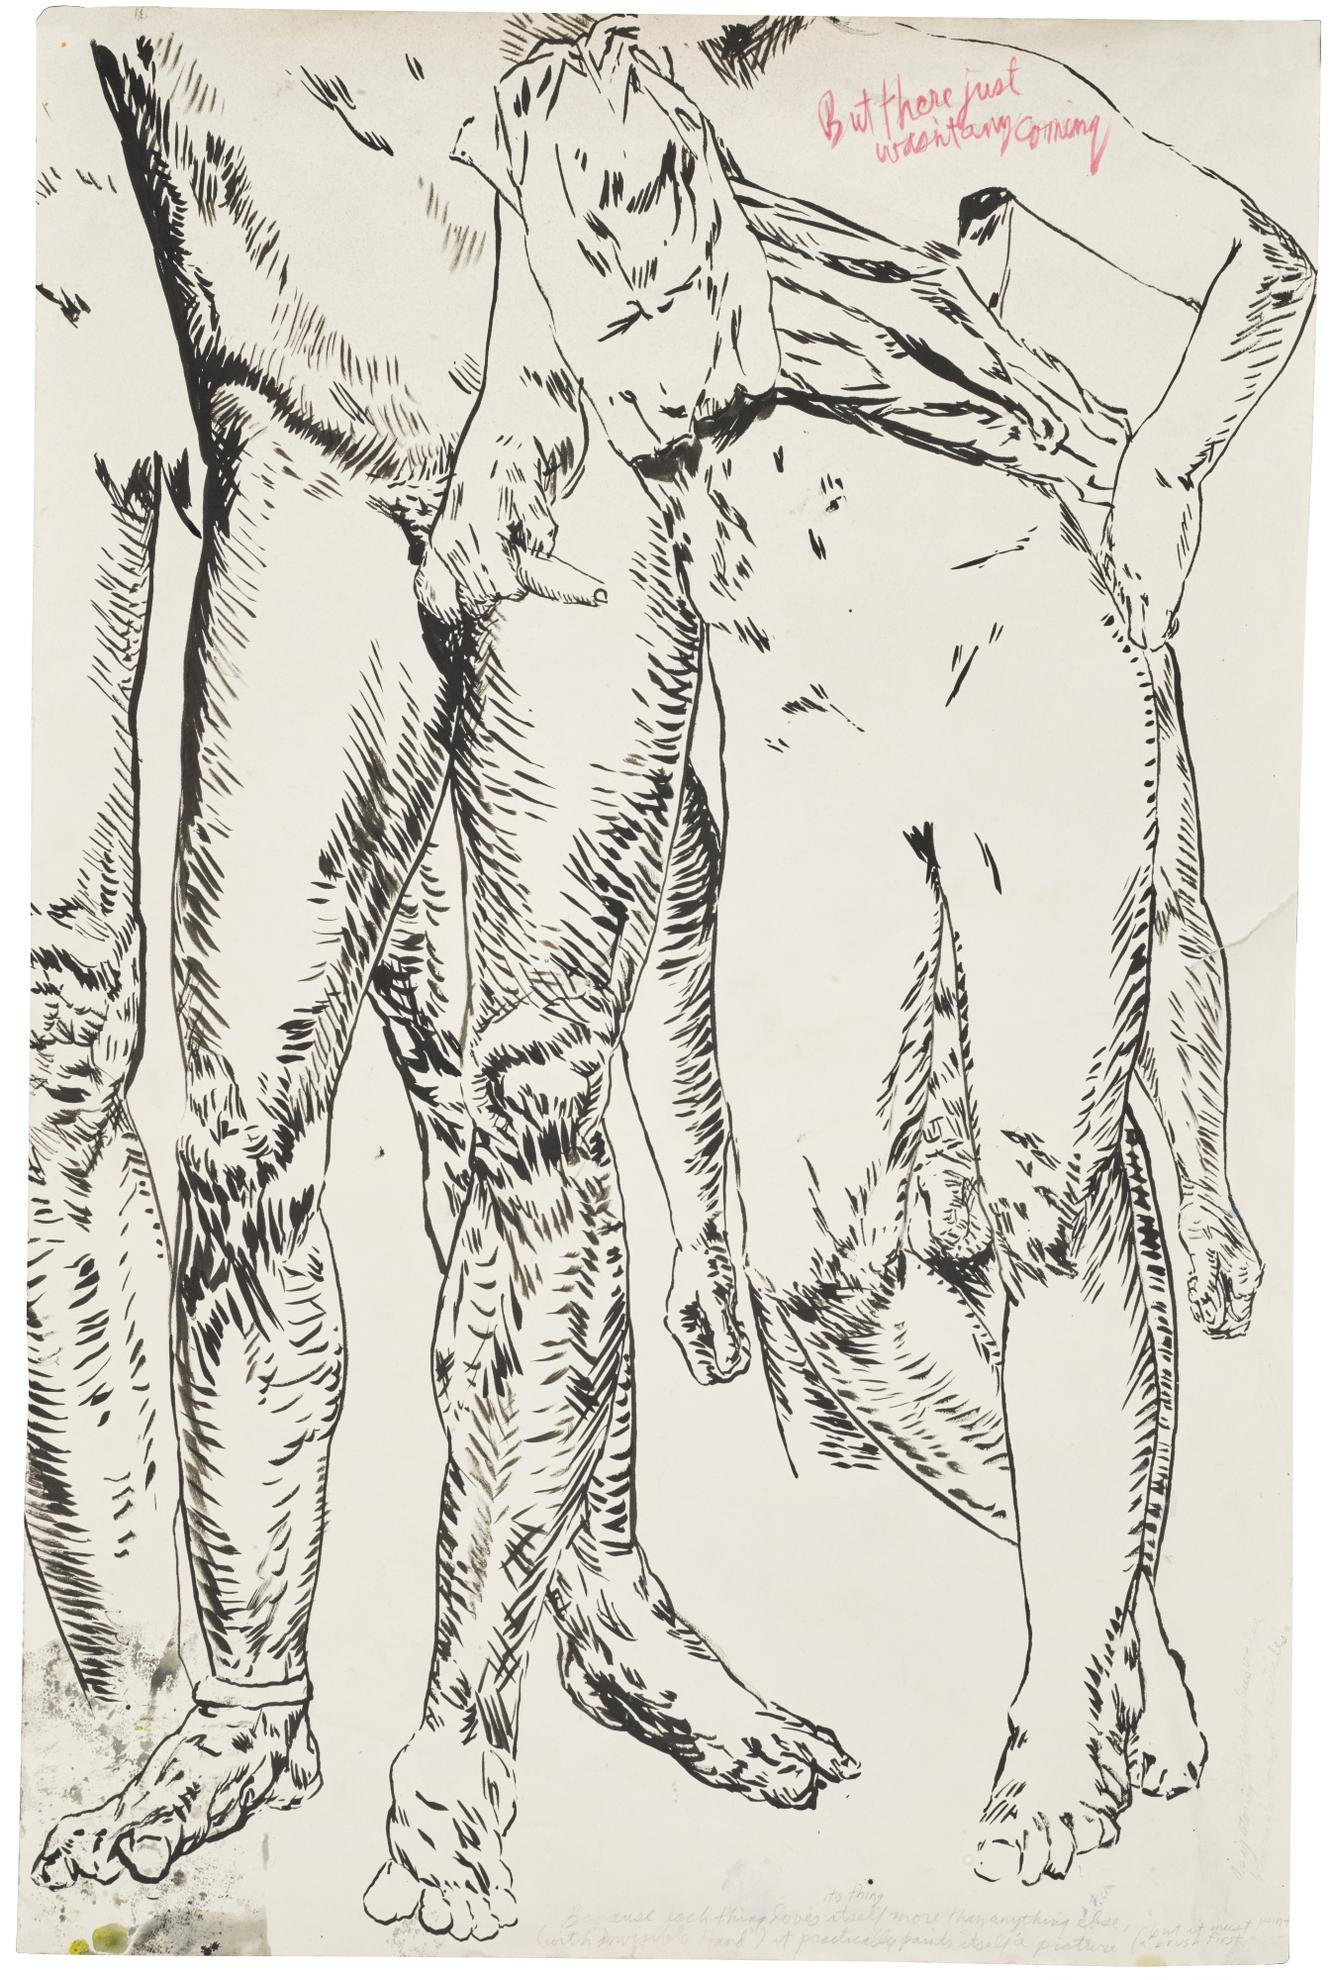 Raymond Pettibon-No Title (But There Were Justs)-2003